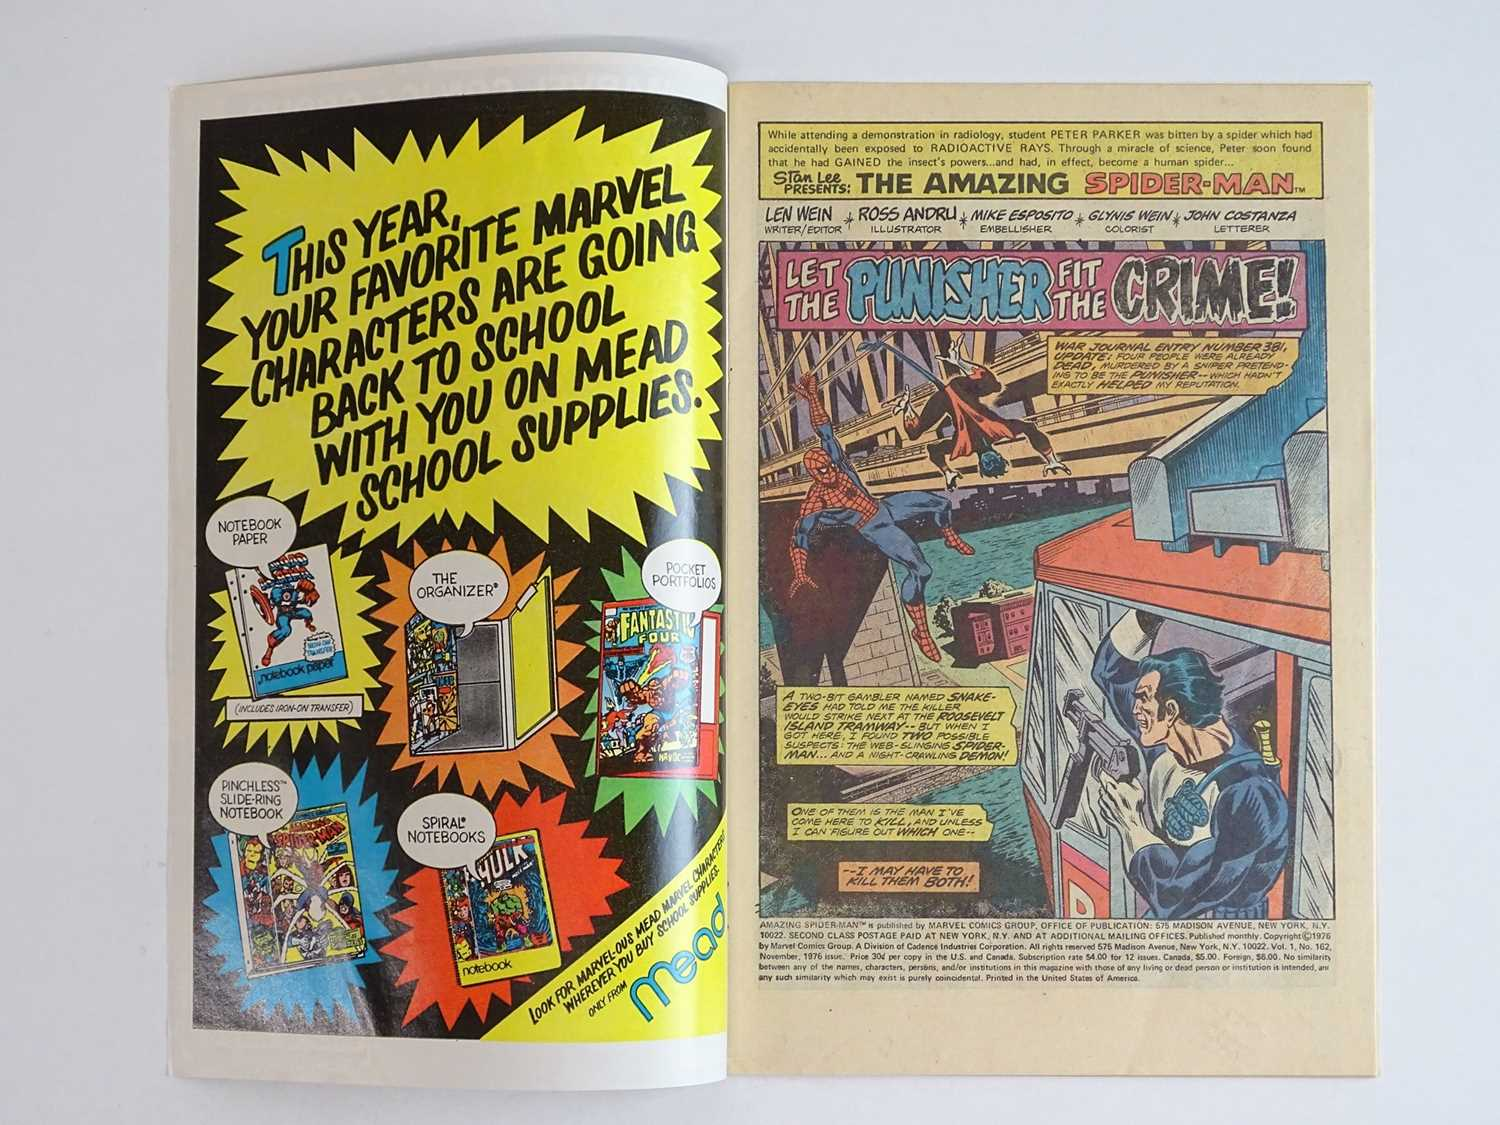 AMAZING SPIDER-MAN #162 - (1976 - MARVEL) - First full appearance of Jigsaw and Dr. Maria - Image 3 of 9